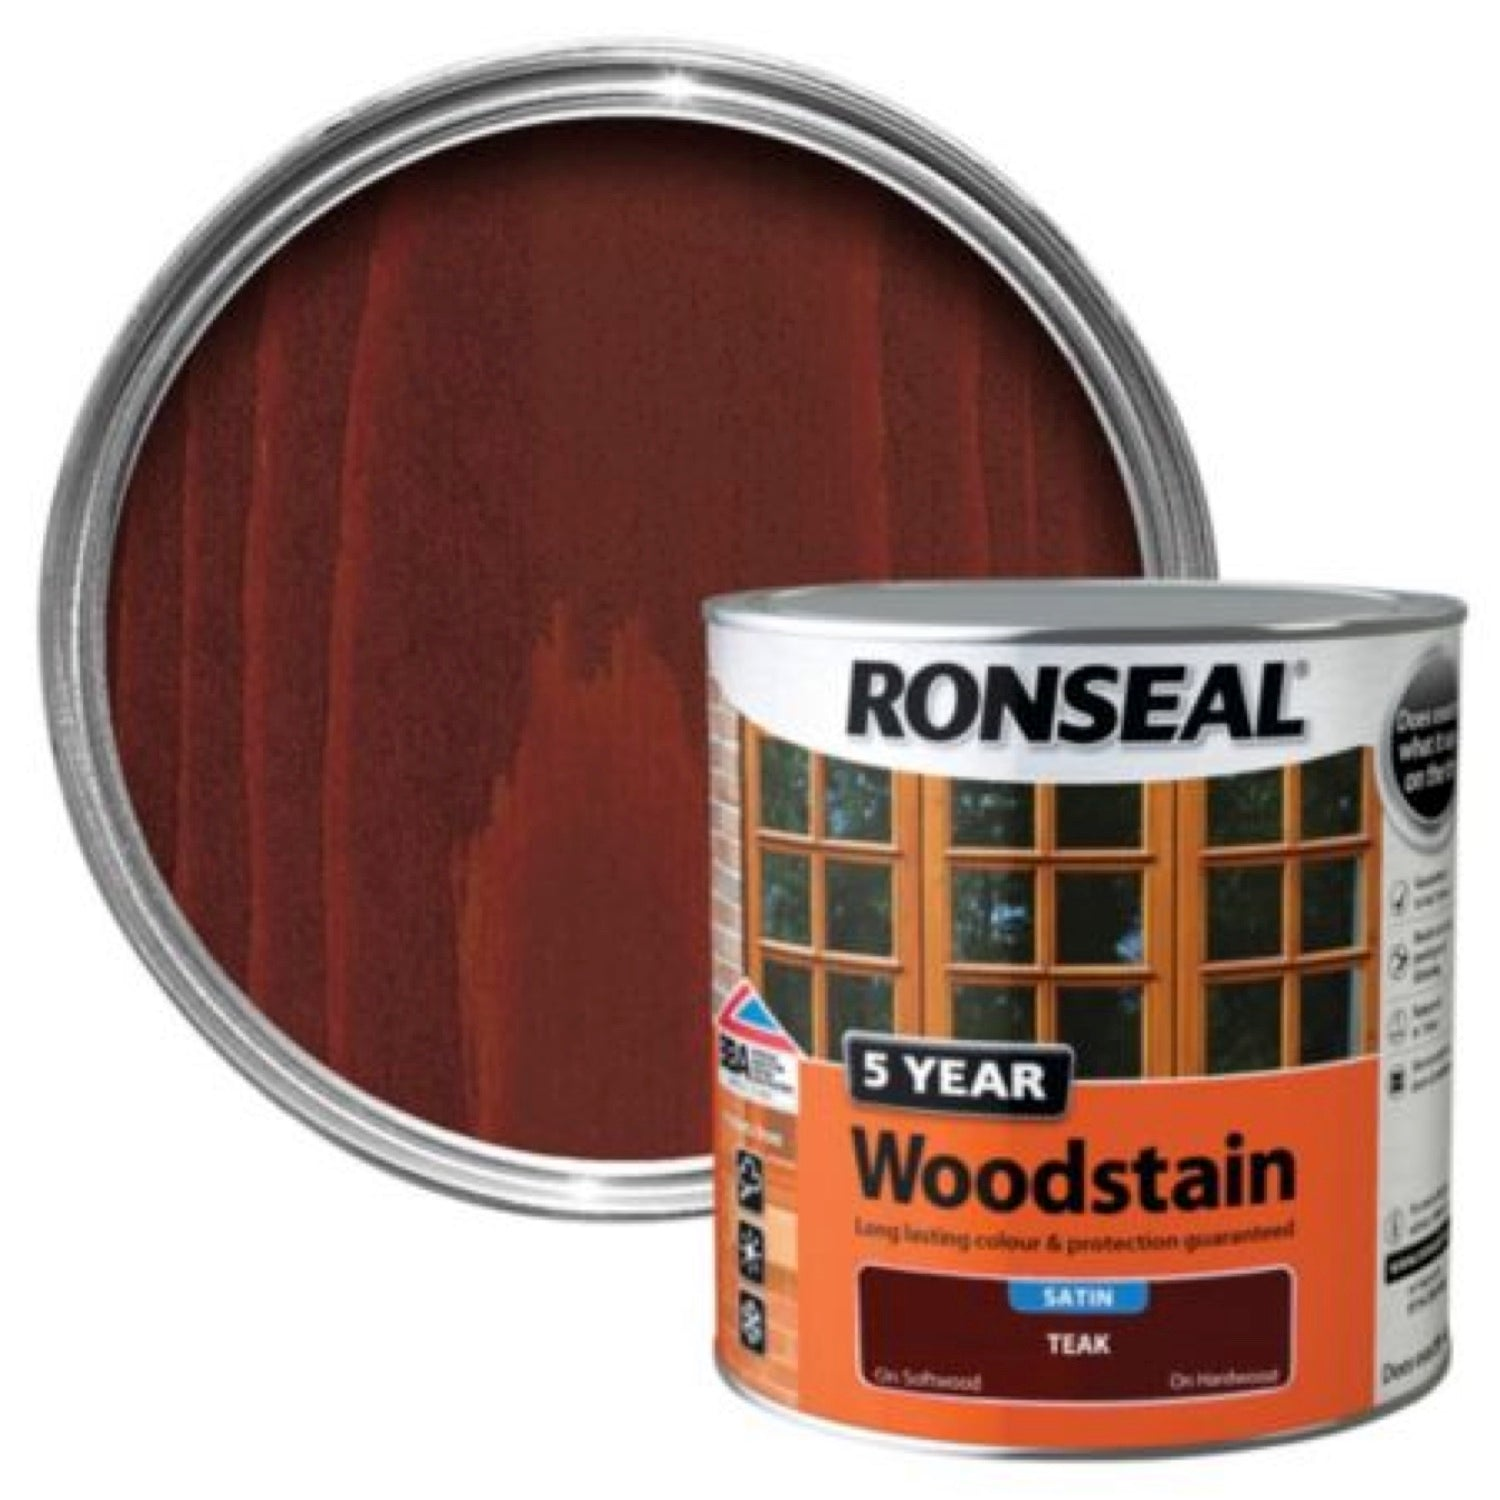 Ronseal 5Yr Woodstain Teak 250ml